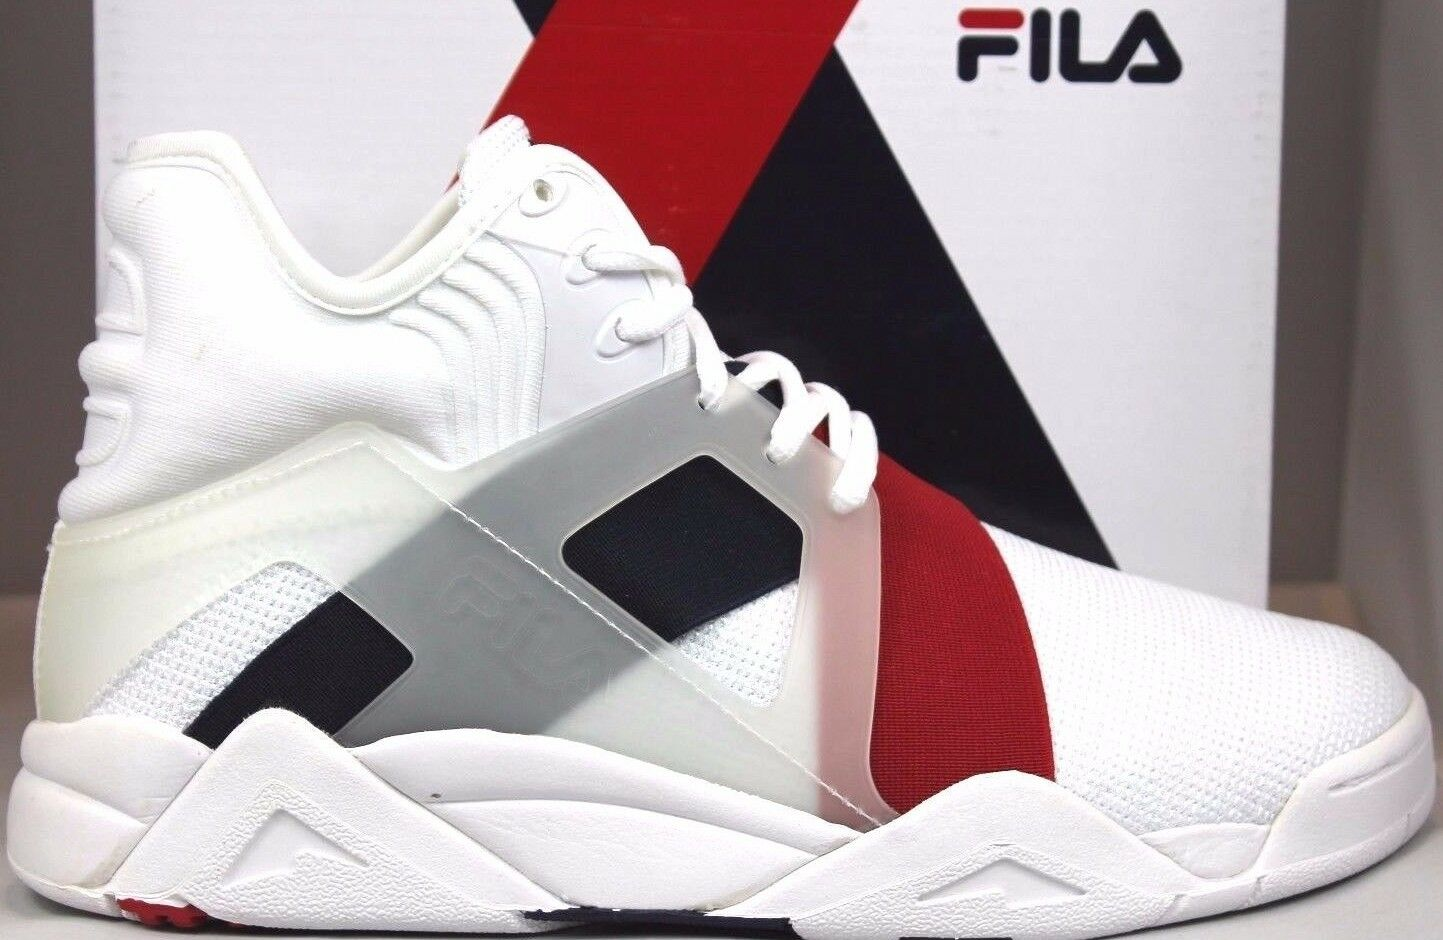 Retro Basketball Cage Performance 17 The Shoes Fila Mens sxQCthdr